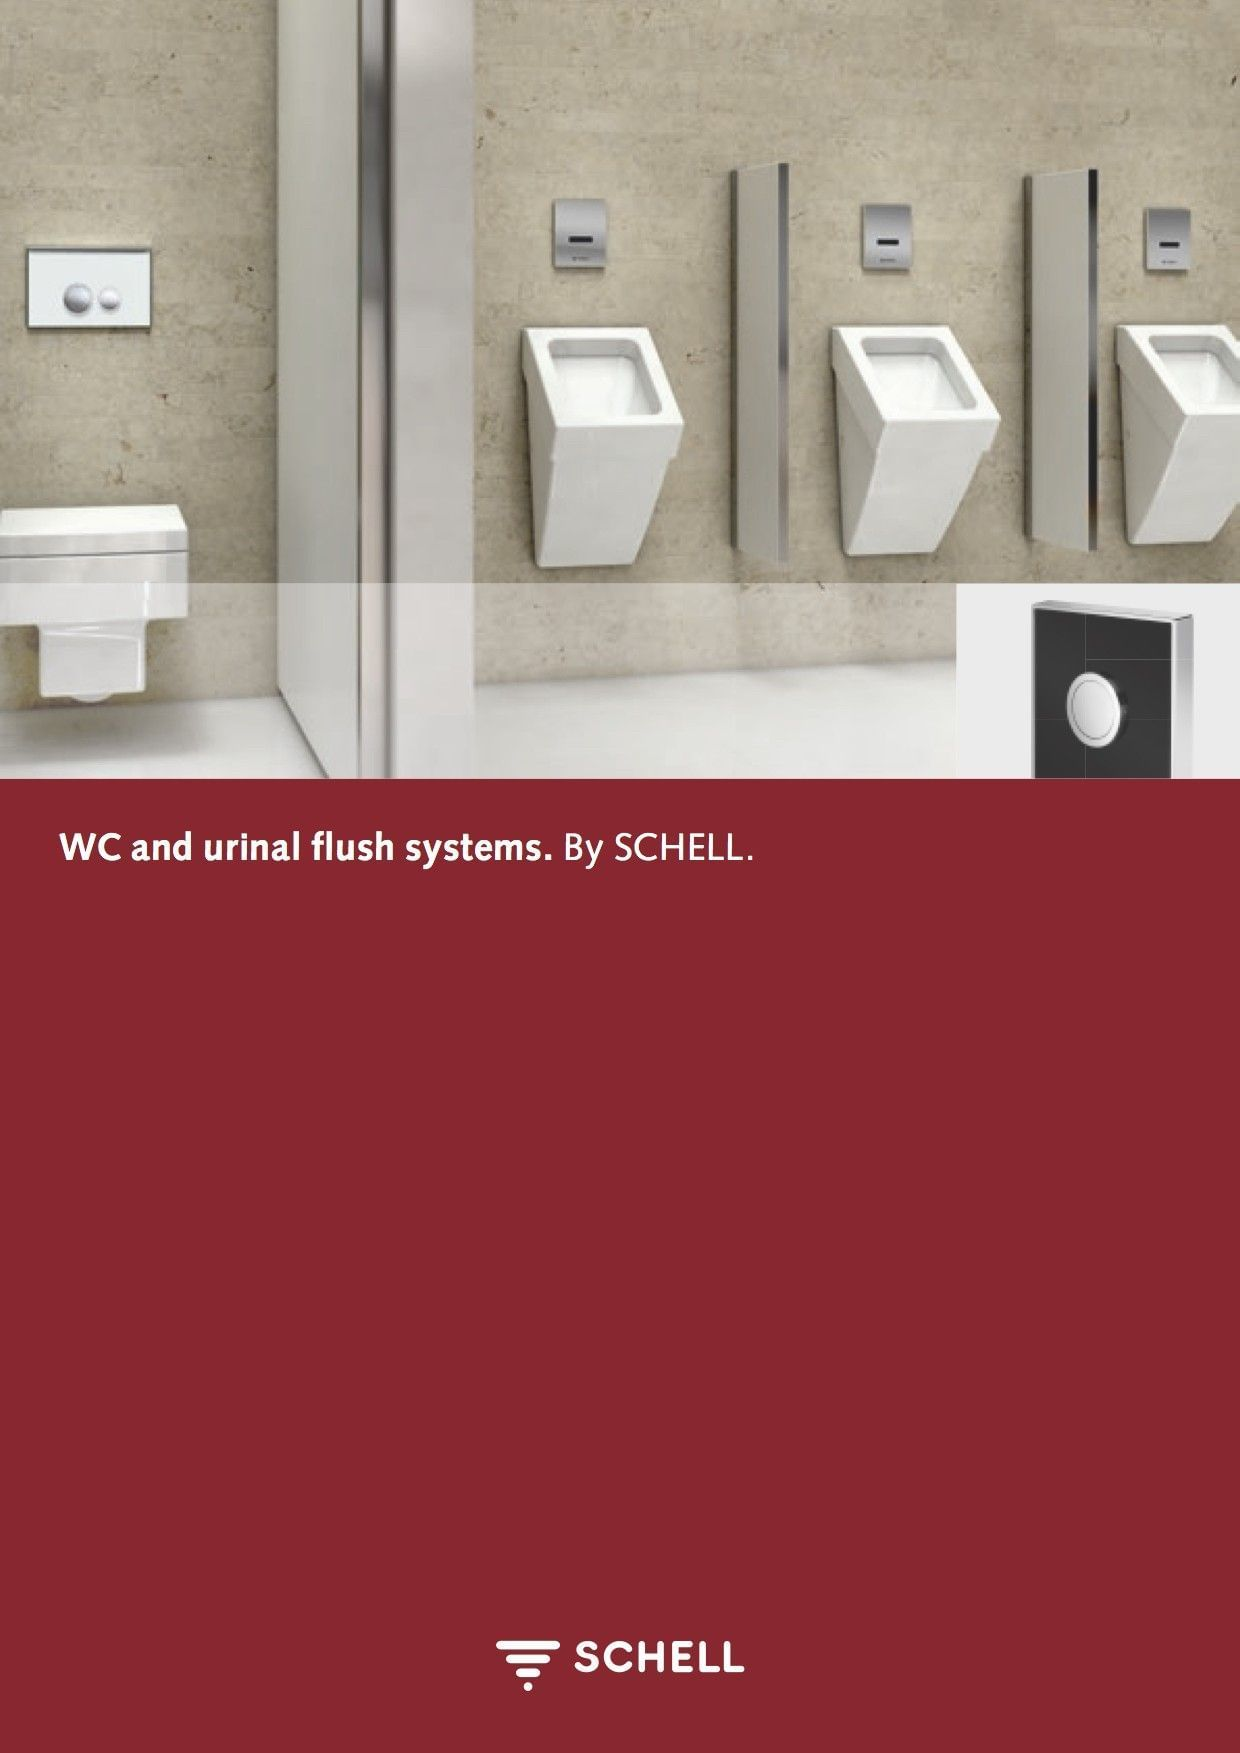 WC and urinal flush systems